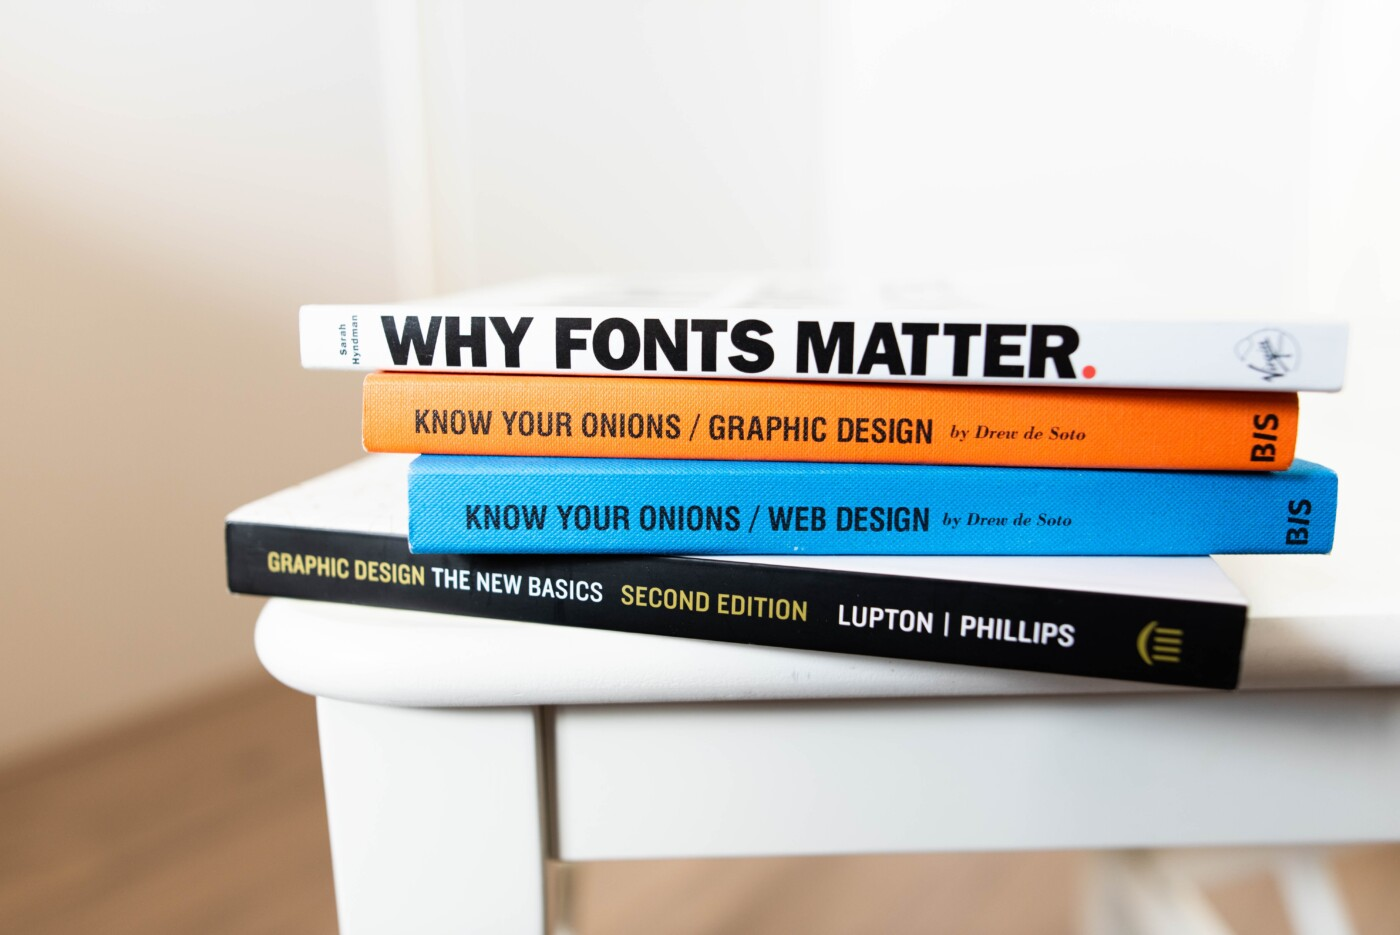 stack of books on visual elements and web design